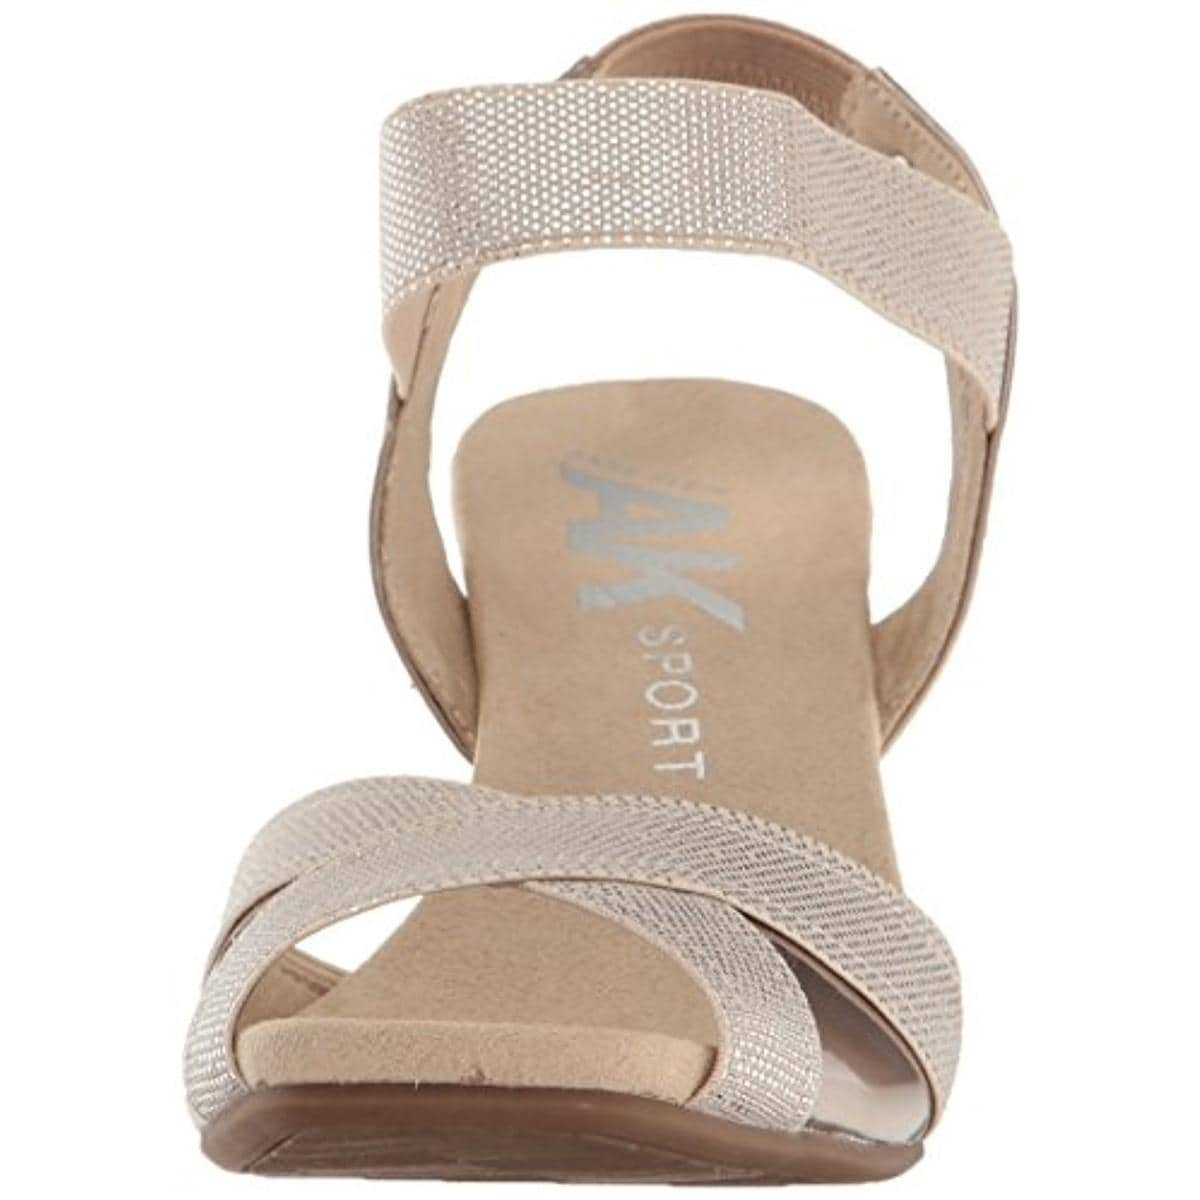 3c82a6edc48 Anne Klein Sport Womens Wilamina Sport Sandals Strappy Open Toe - Free  Shipping On Orders Over  45 - Overstock - 26816670